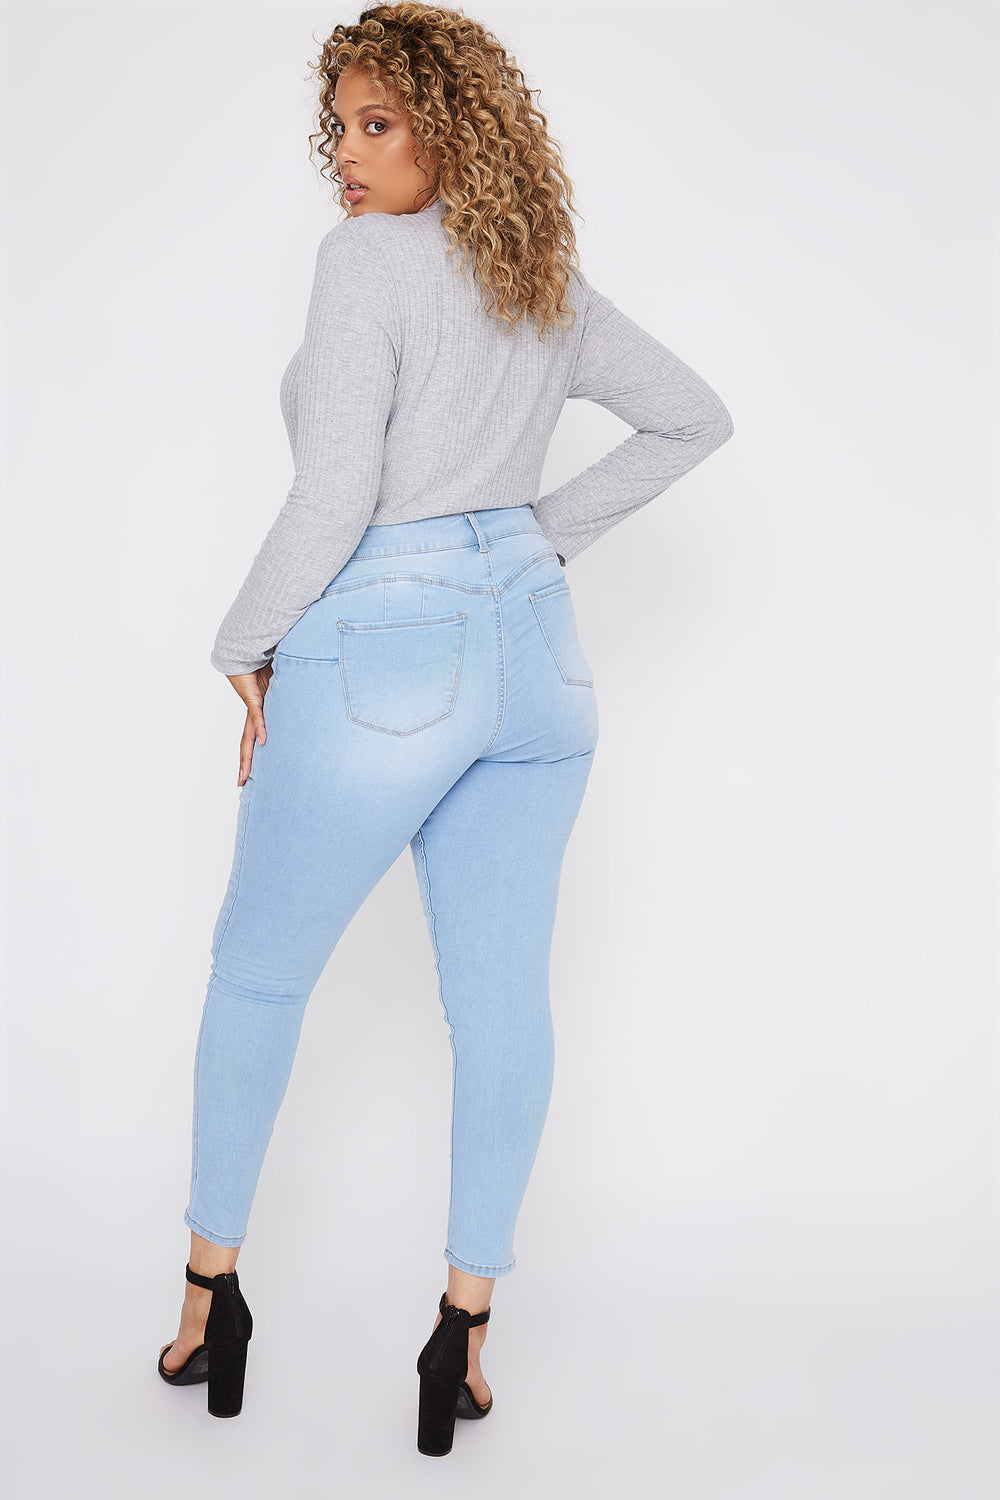 Plus Size Butt, I Love You 6-Tier High-Rise Push-Up Skinny Jean Light Denim Blue